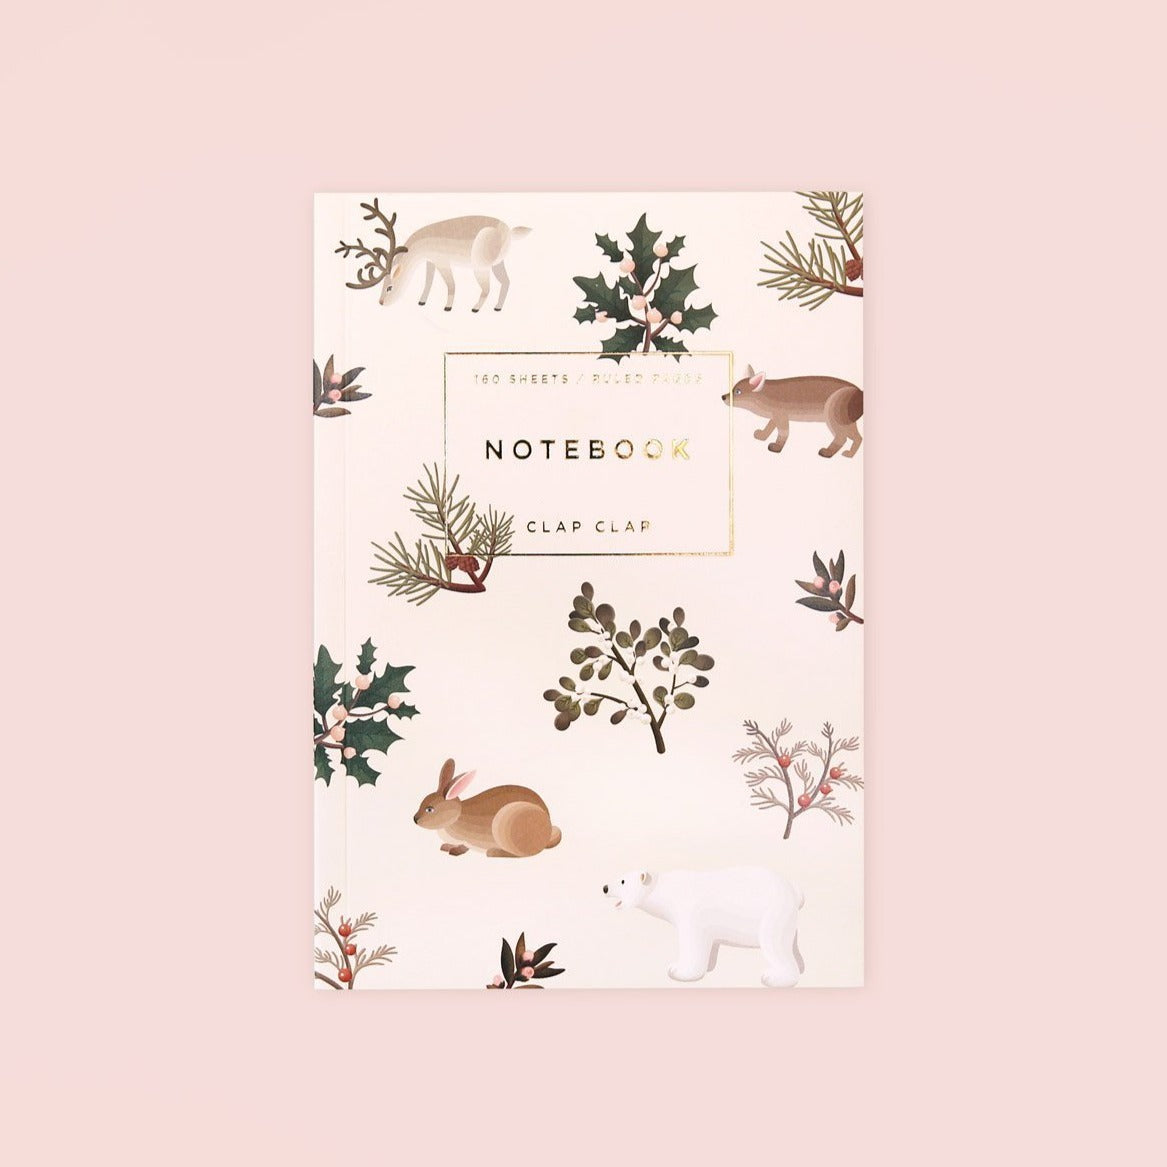 Wild Animals Notebook - Cream, Lined Hong Kong Stationery Cute Pink Pattern Rabbits Plants Flowers Clap Clap